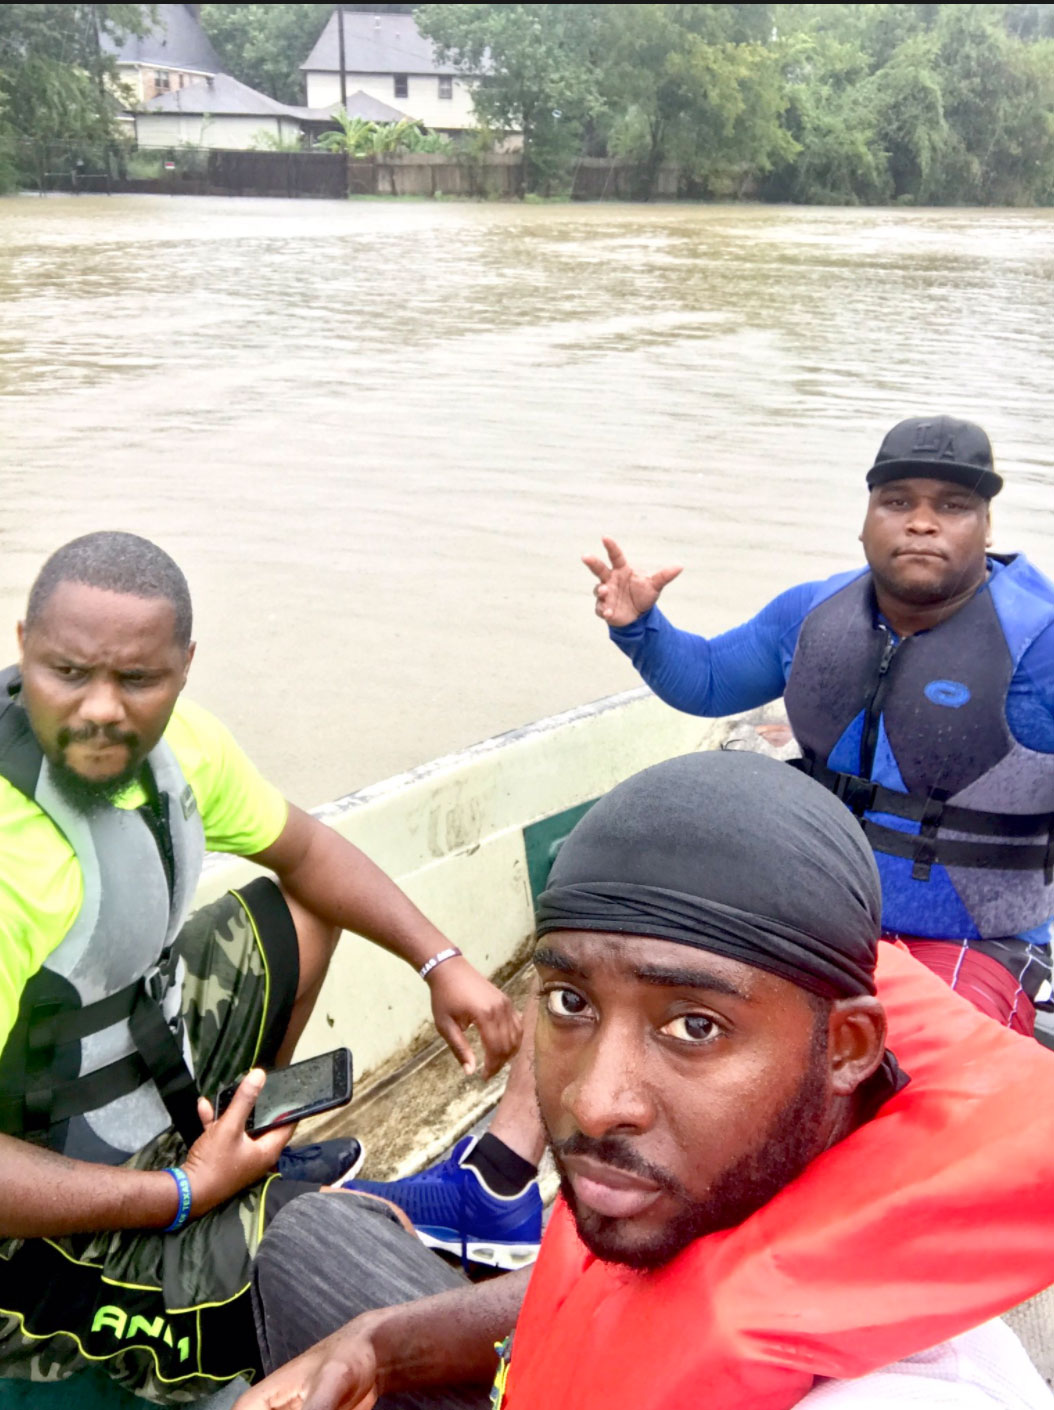 <div class='meta'><div class='origin-logo' data-origin='none'></div><span class='caption-text' data-credit='Larry Brown/Twitter'>Citizen rescuers in Houston on Tuesday captured these photos.</span></div>